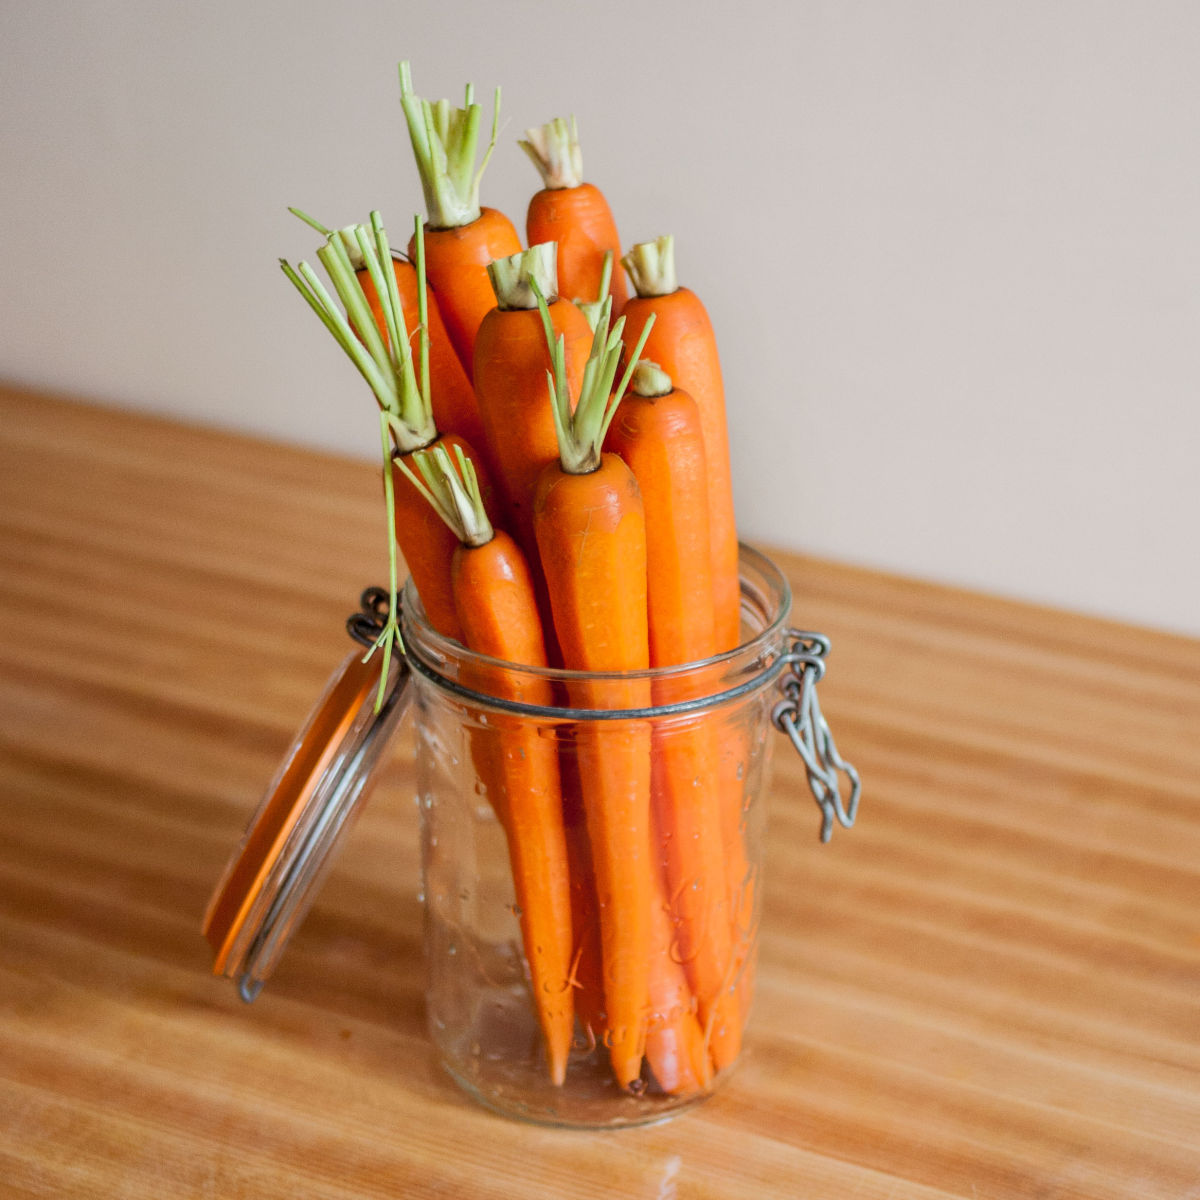 Fitting carrots in a jar